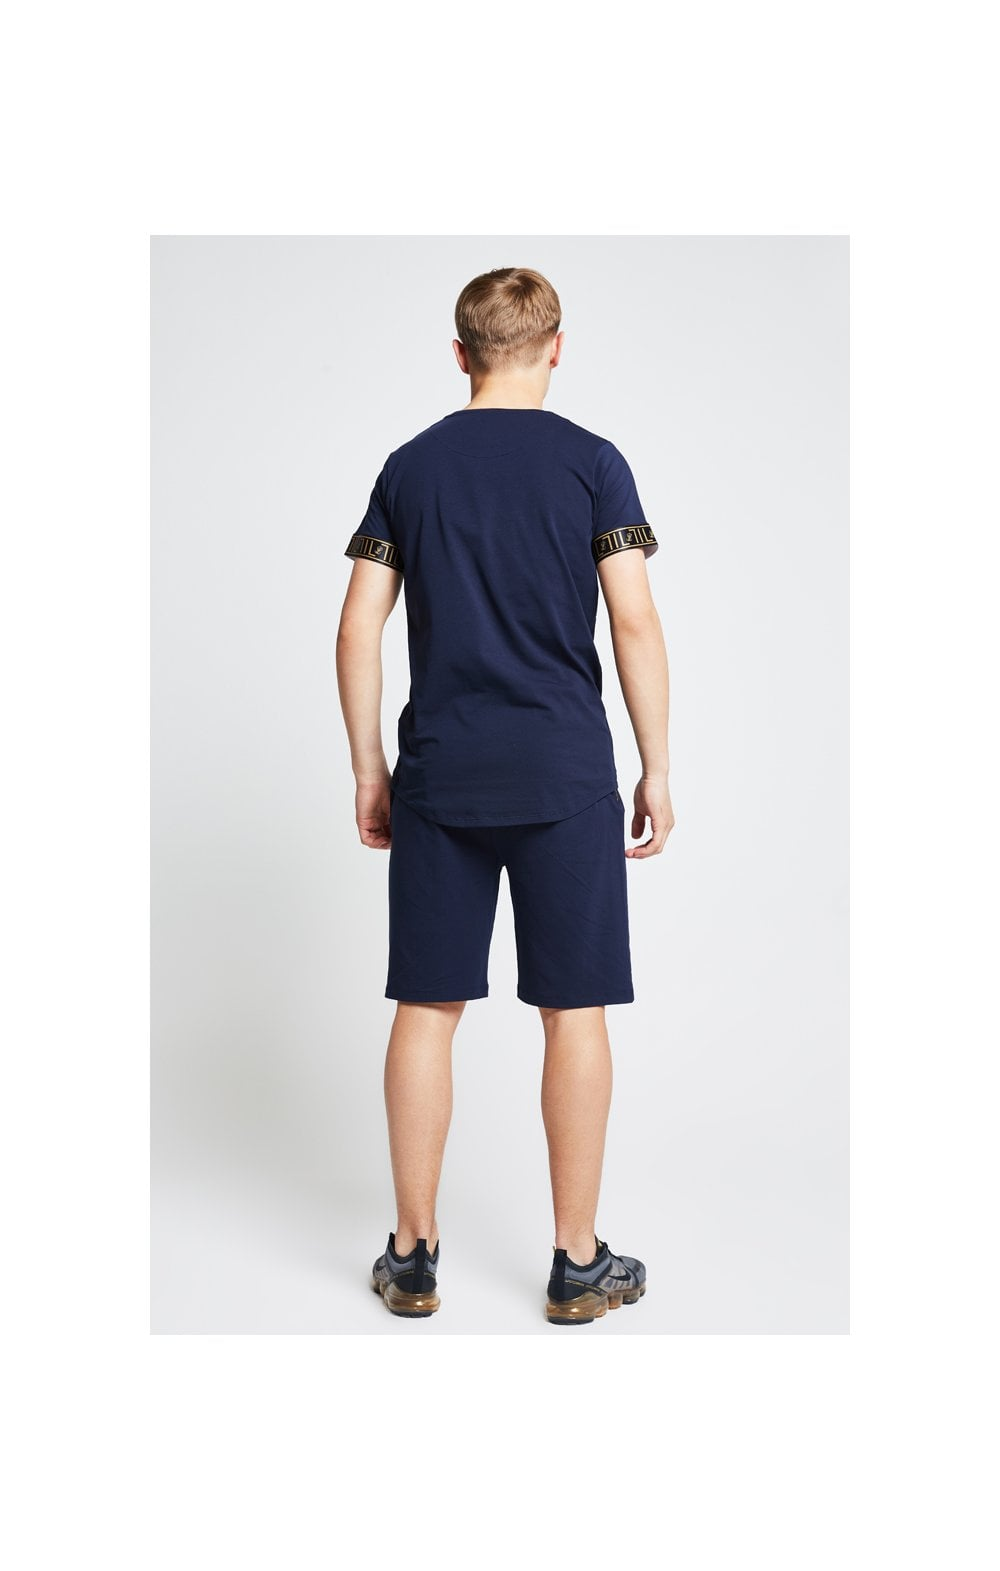 Load image into Gallery viewer, Illusive London Tape Jersey Shorts - Navy (5)